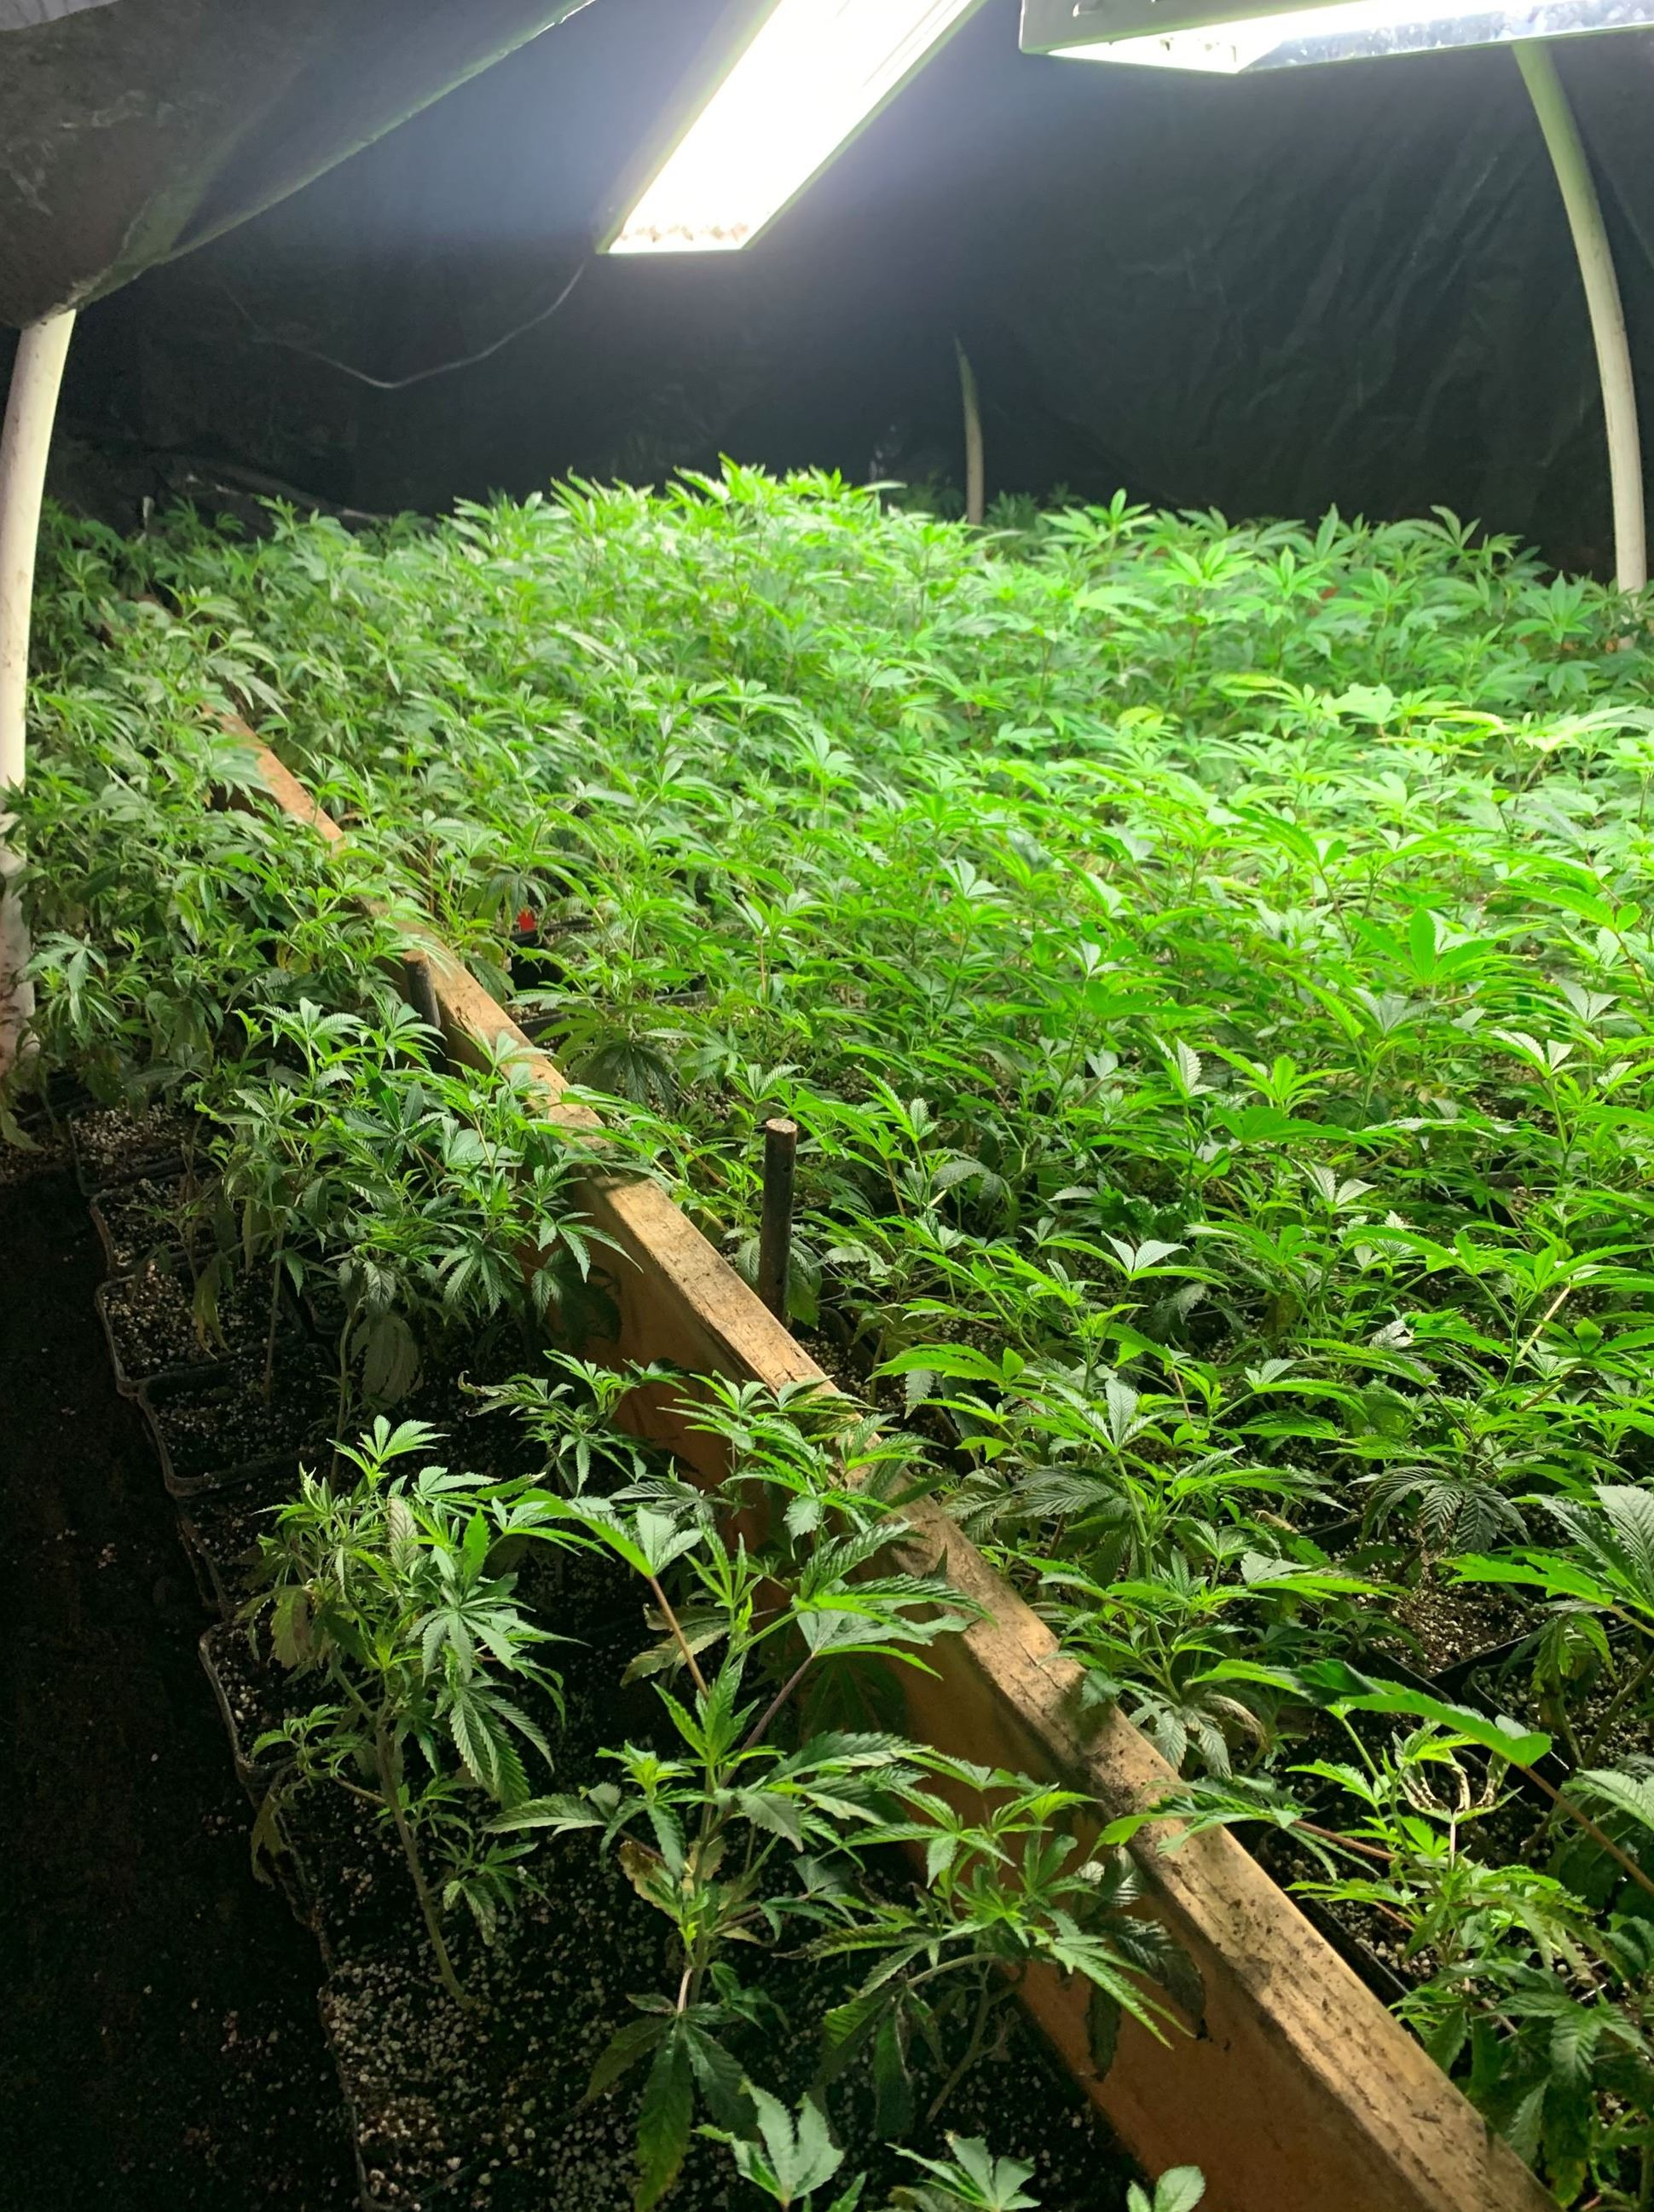 Room full of growing cannabis plants